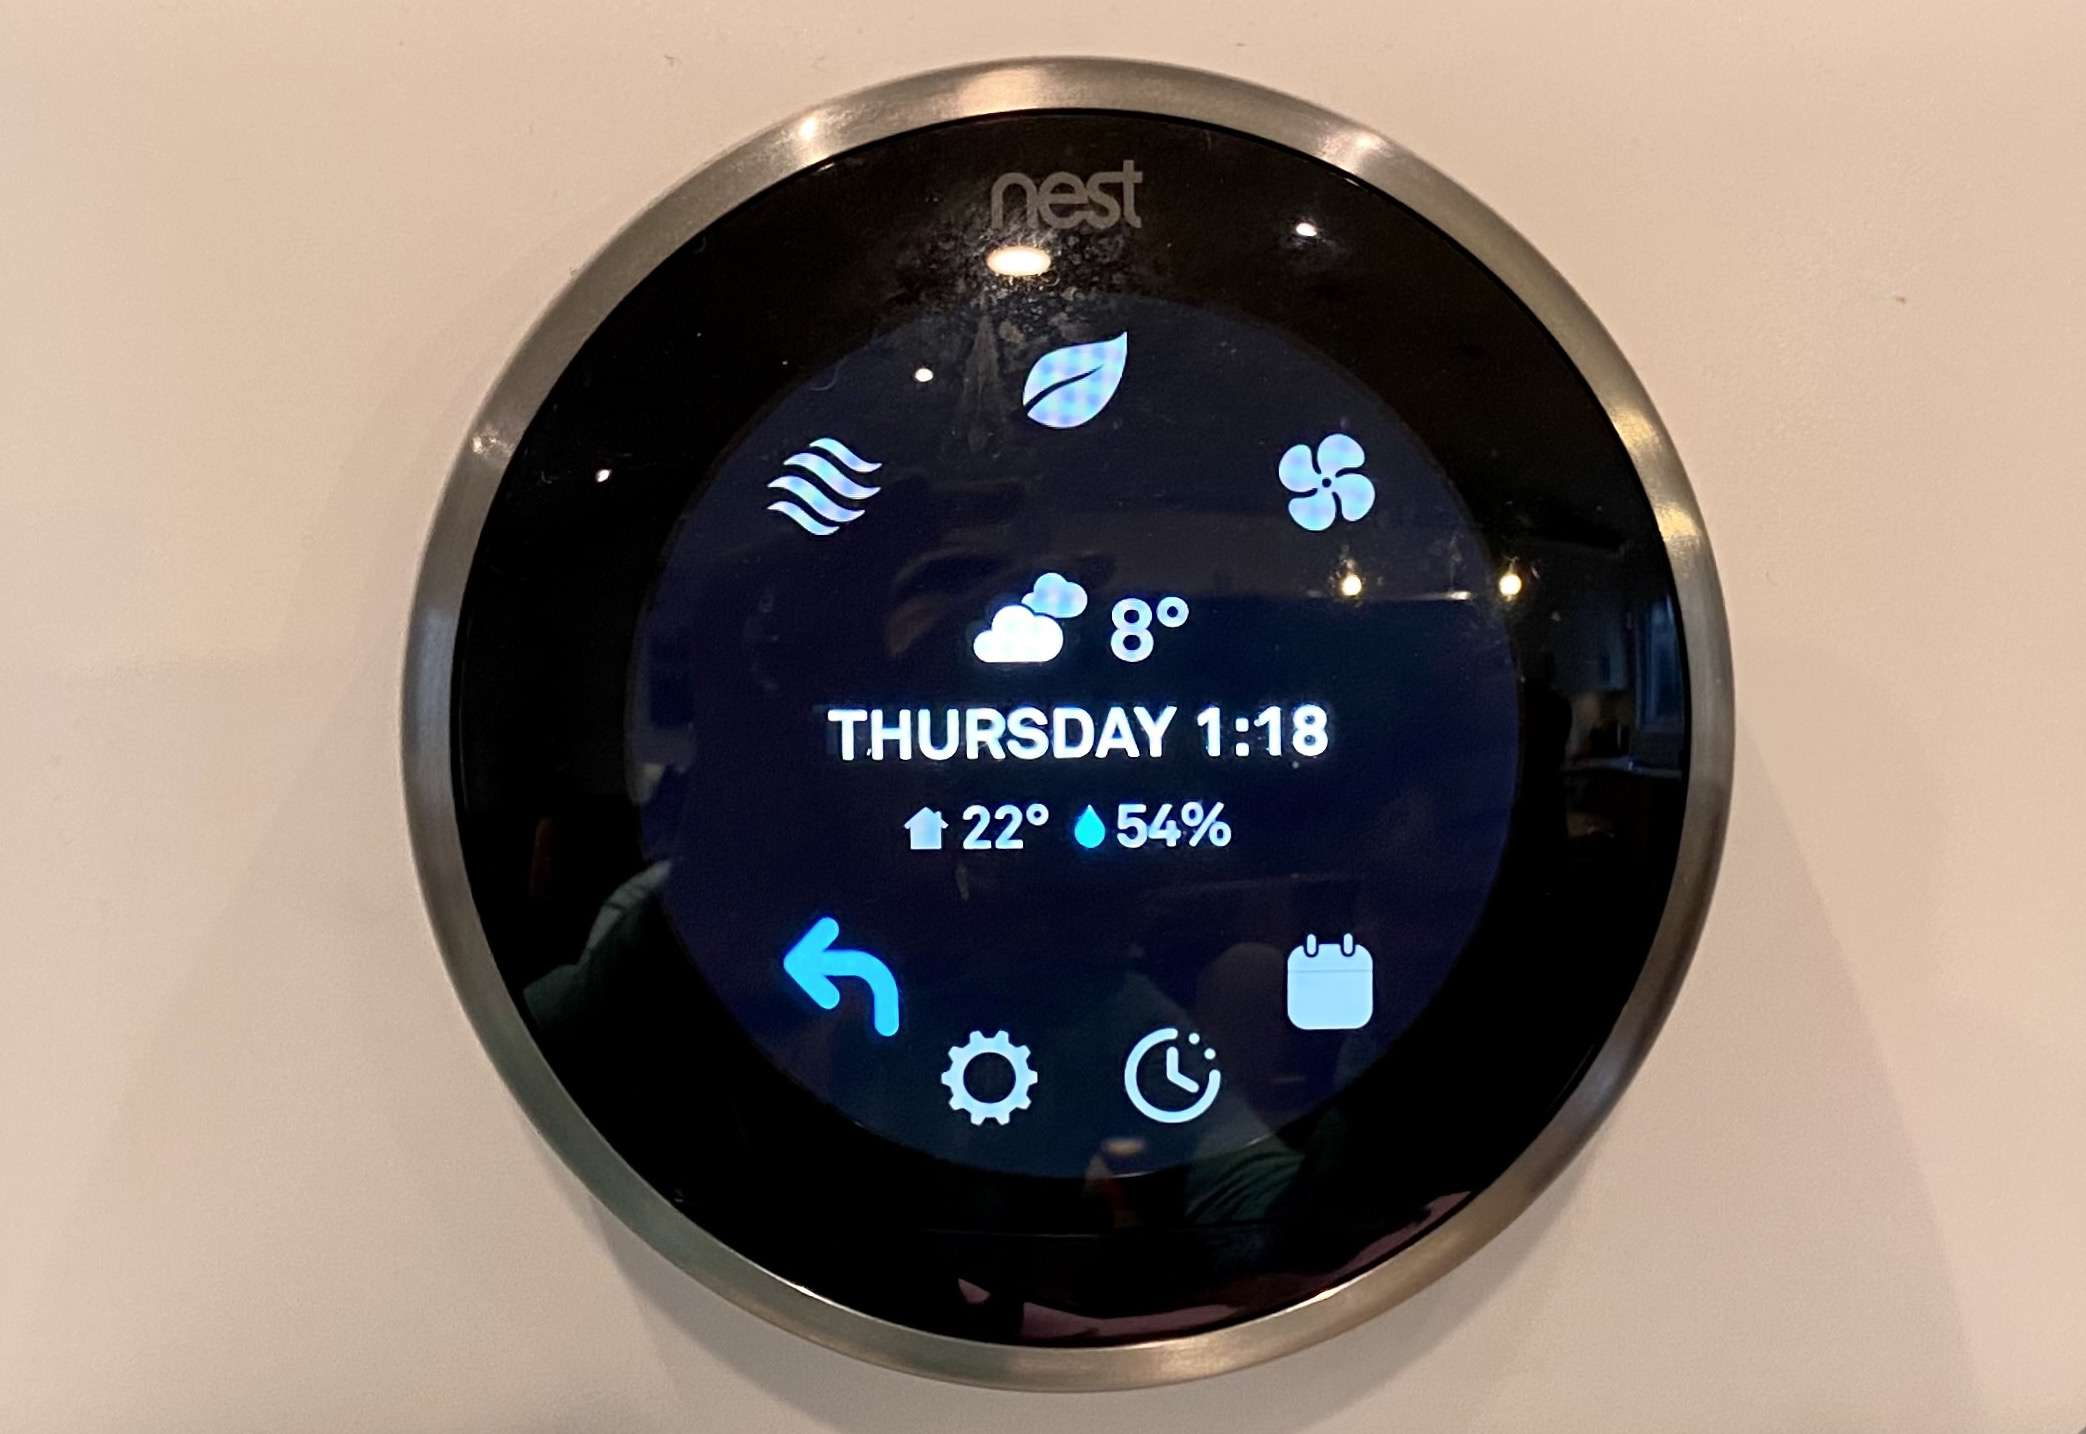 The menu on the Nest thermostat.